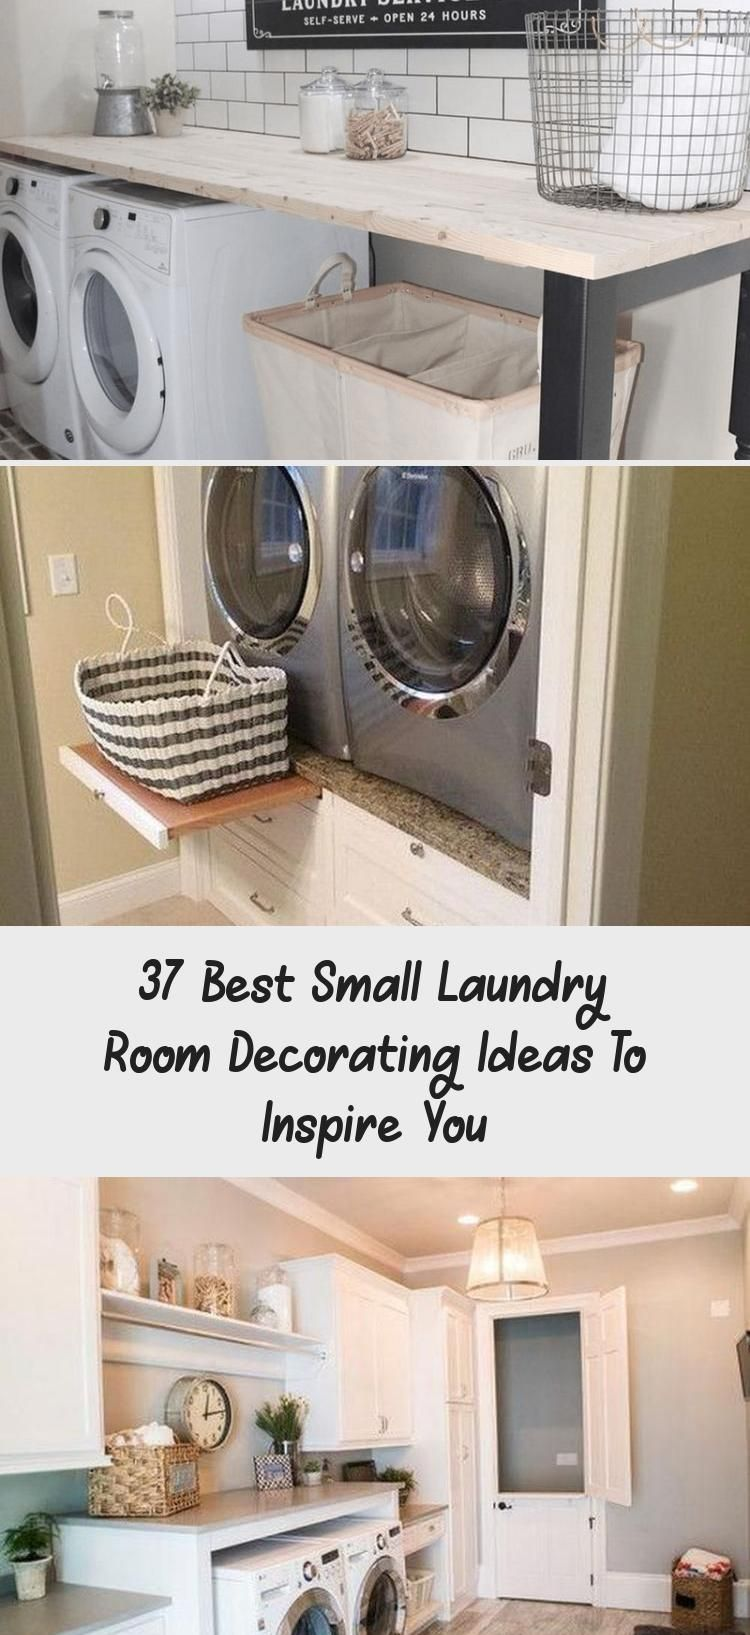 37 best small laundry room decorating ideas to inspire you on effectively laundry room decoration ideas easy ideas to inspire you id=82742